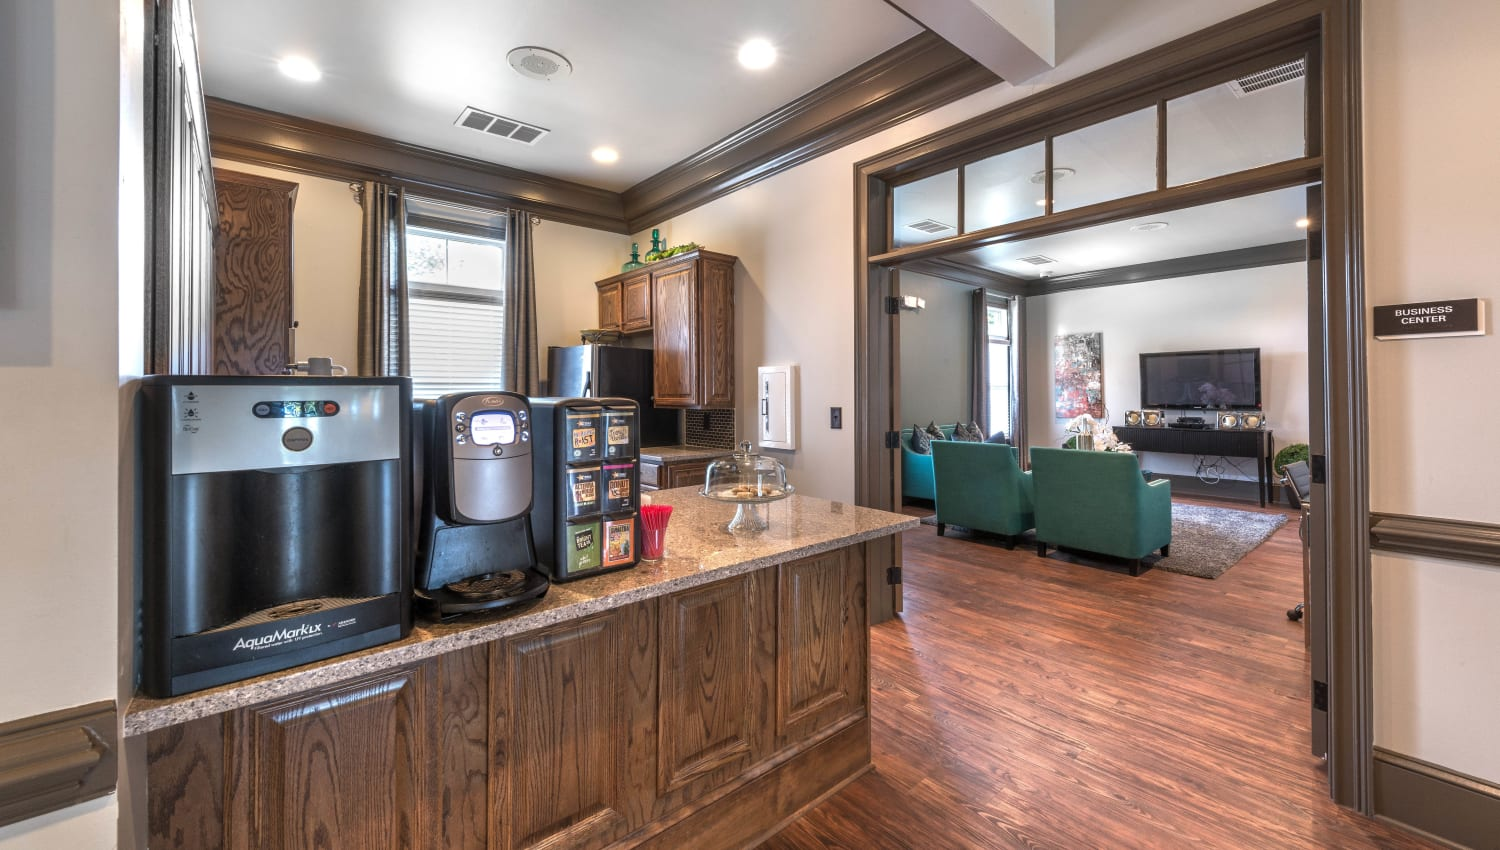 Complimentary coffee in the clubhouse at Olympus Hillwood in Murfreesboro, Tennessee